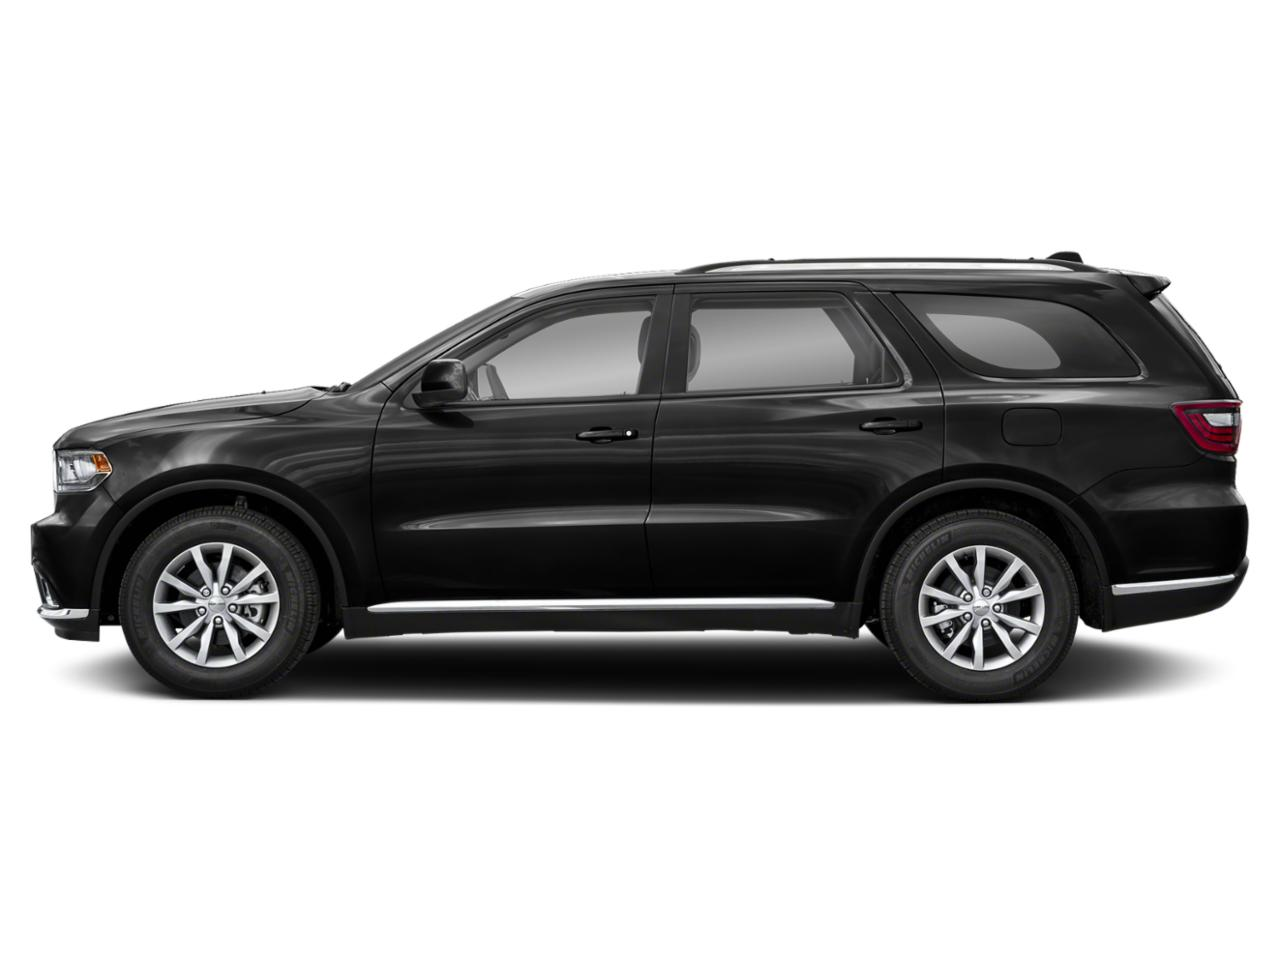 Used 2020 Dodge Durango GT with VIN 1C4RDJDG9LC382654 for sale in Brooklyn Center, Minnesota